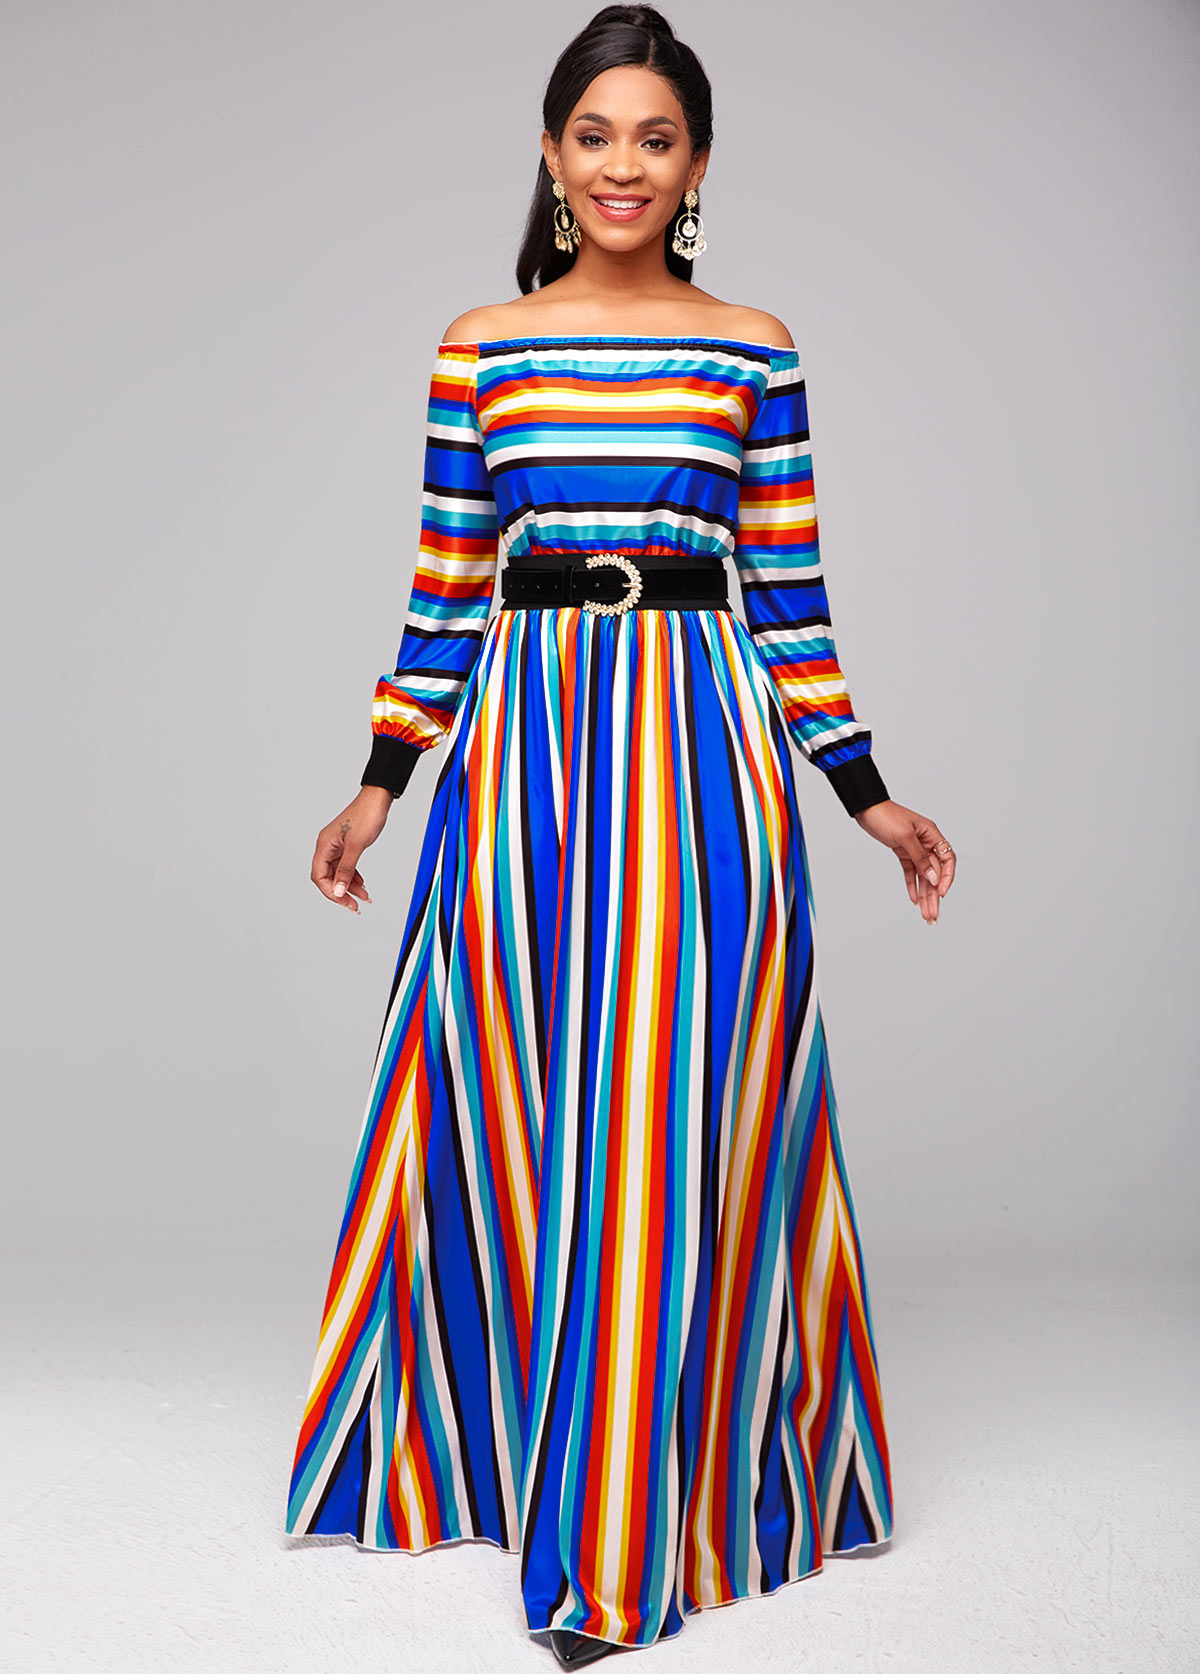 ROTITA Off Shoulder Striped Top and Rainbow Color Skirt